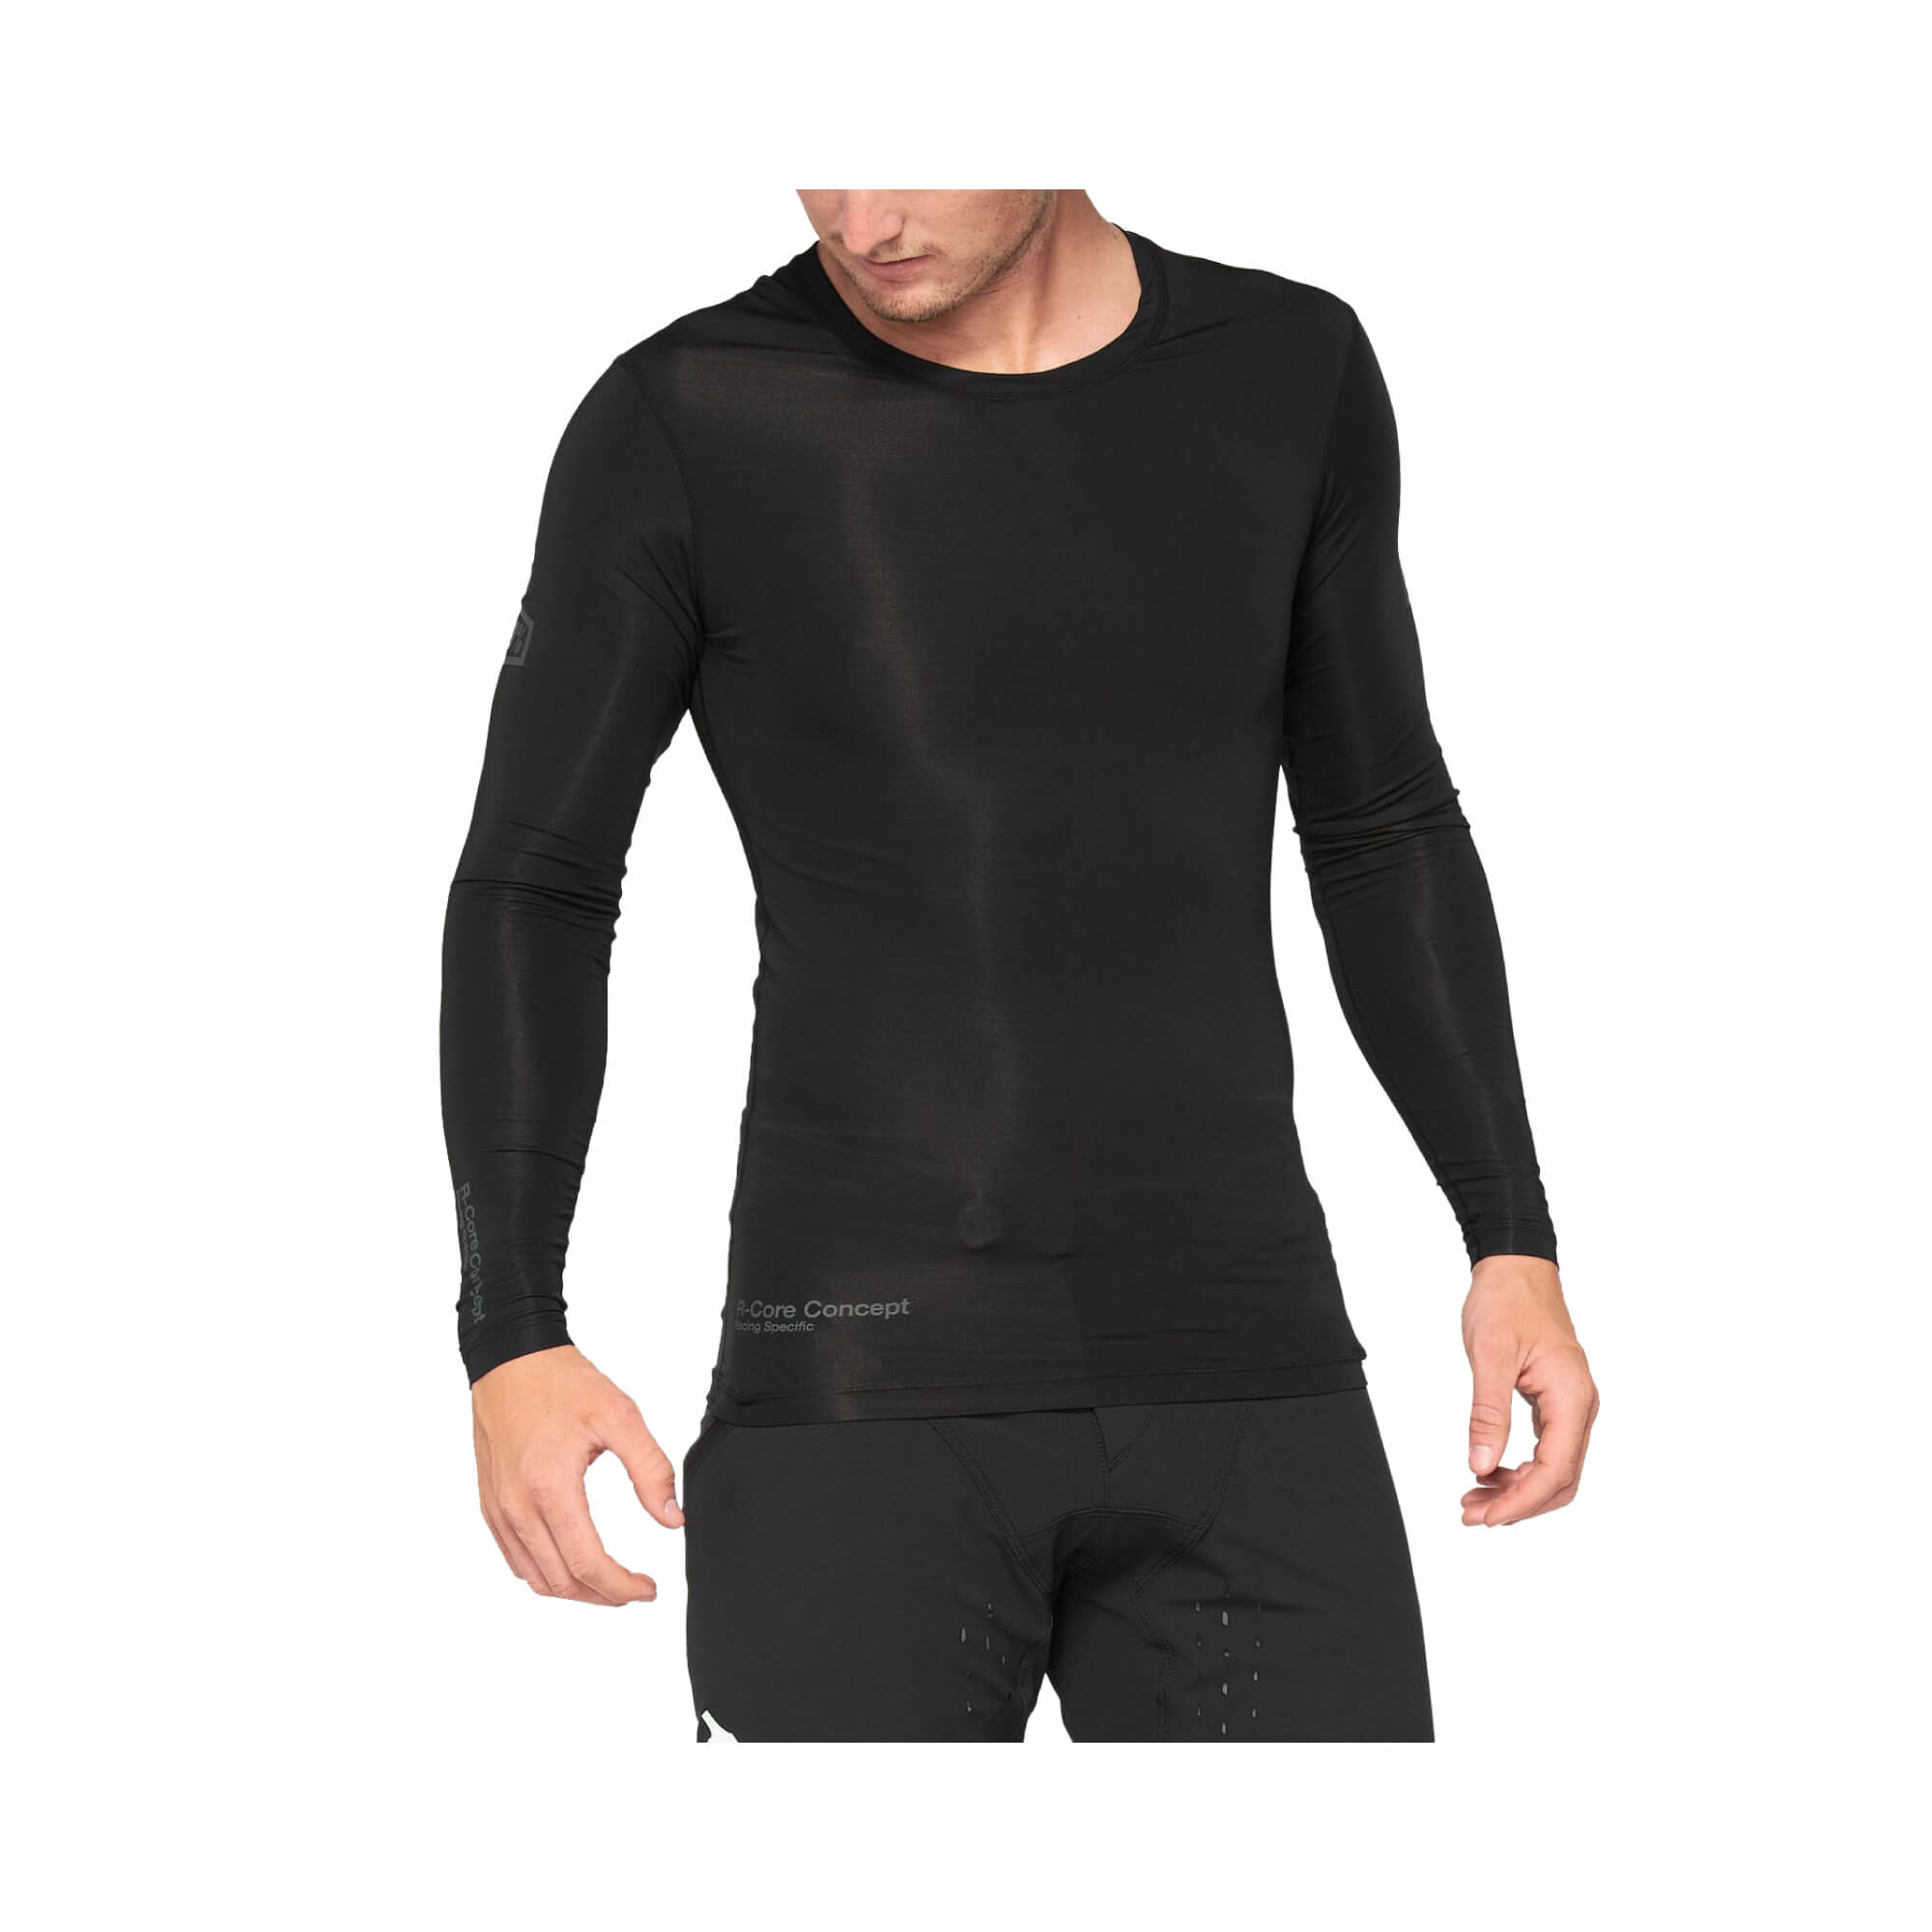 R-Core Concept Long Sleeve Jersey 2021-3